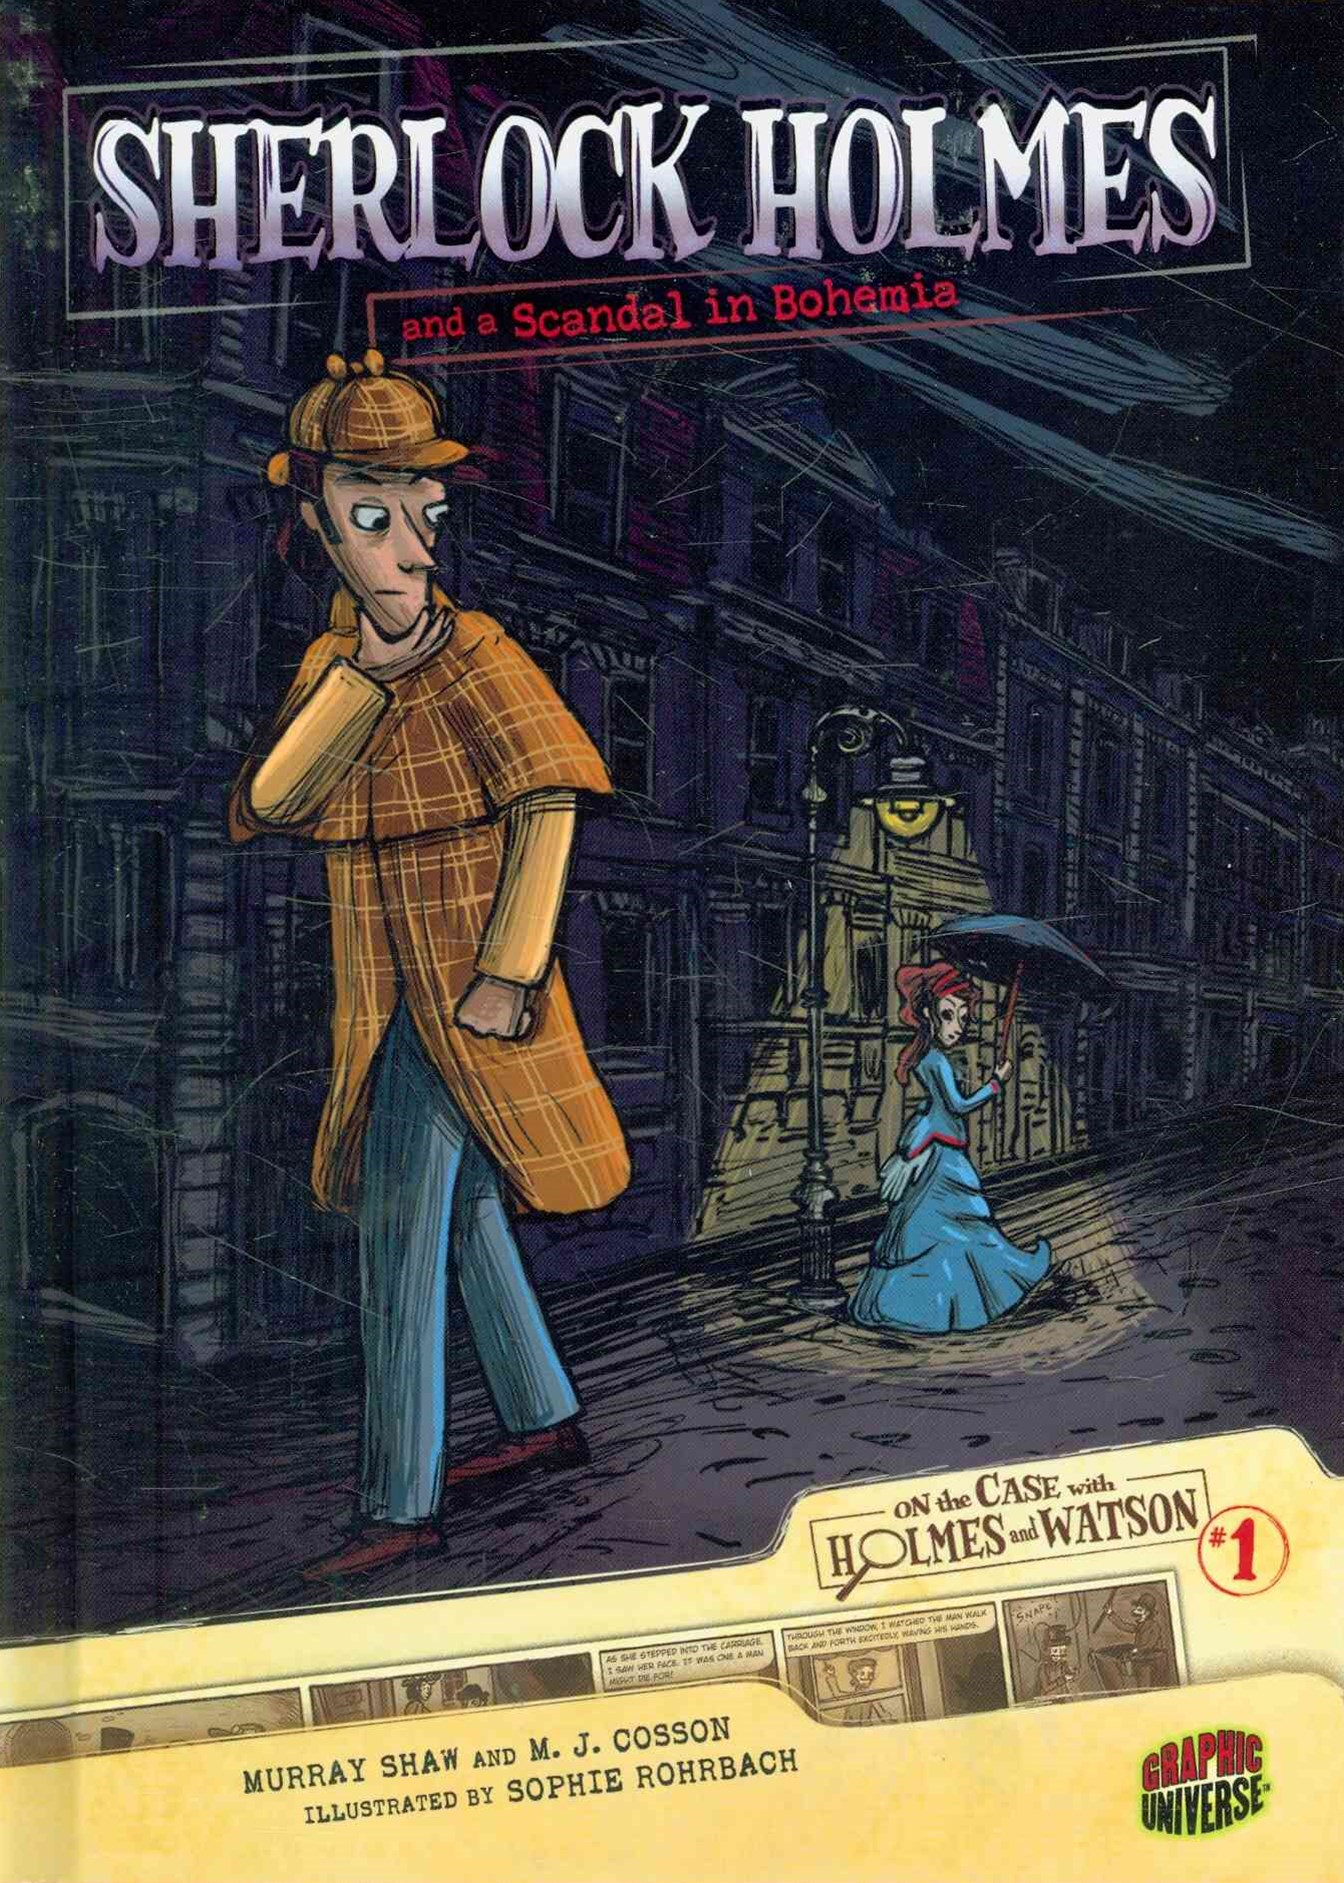 Sherlock Holmes and a Scandal in Bohemia - Graphic Book 1